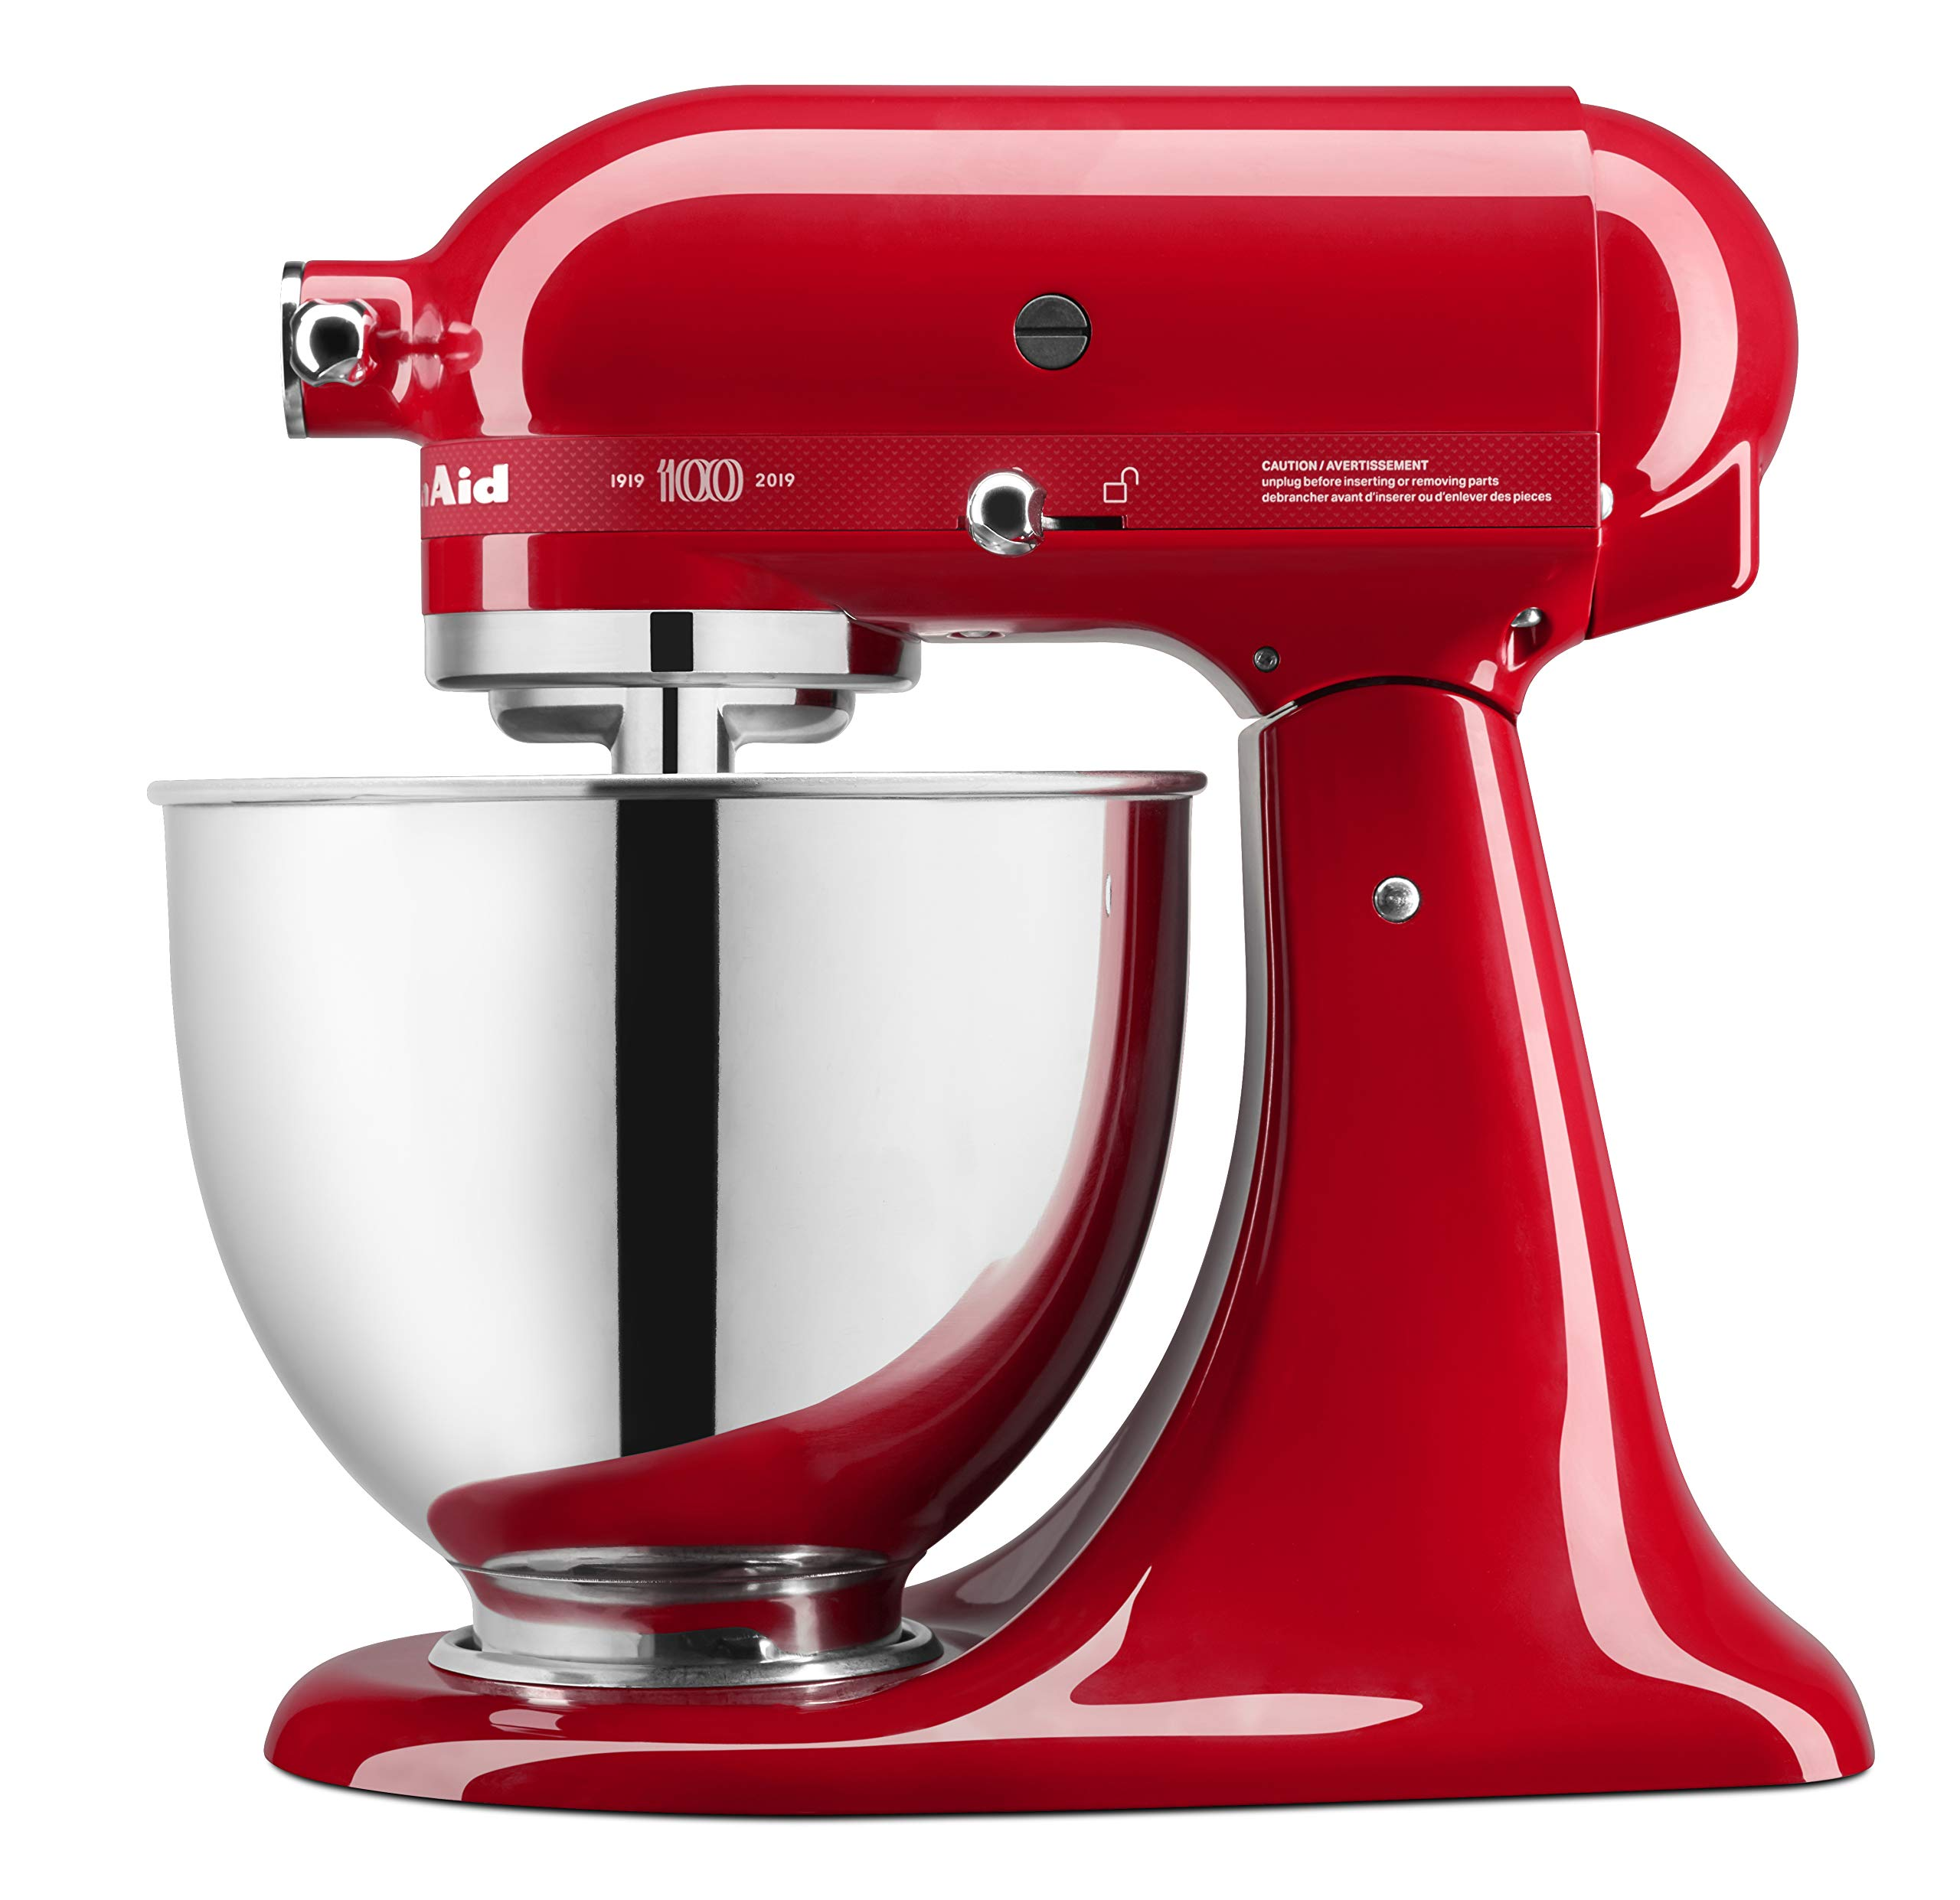 KitchenAid KSM180QHSD 100 Year Limited Edition Queen of Hearts Stand Mixer, Passion Red by KitchenAid (Image #2)